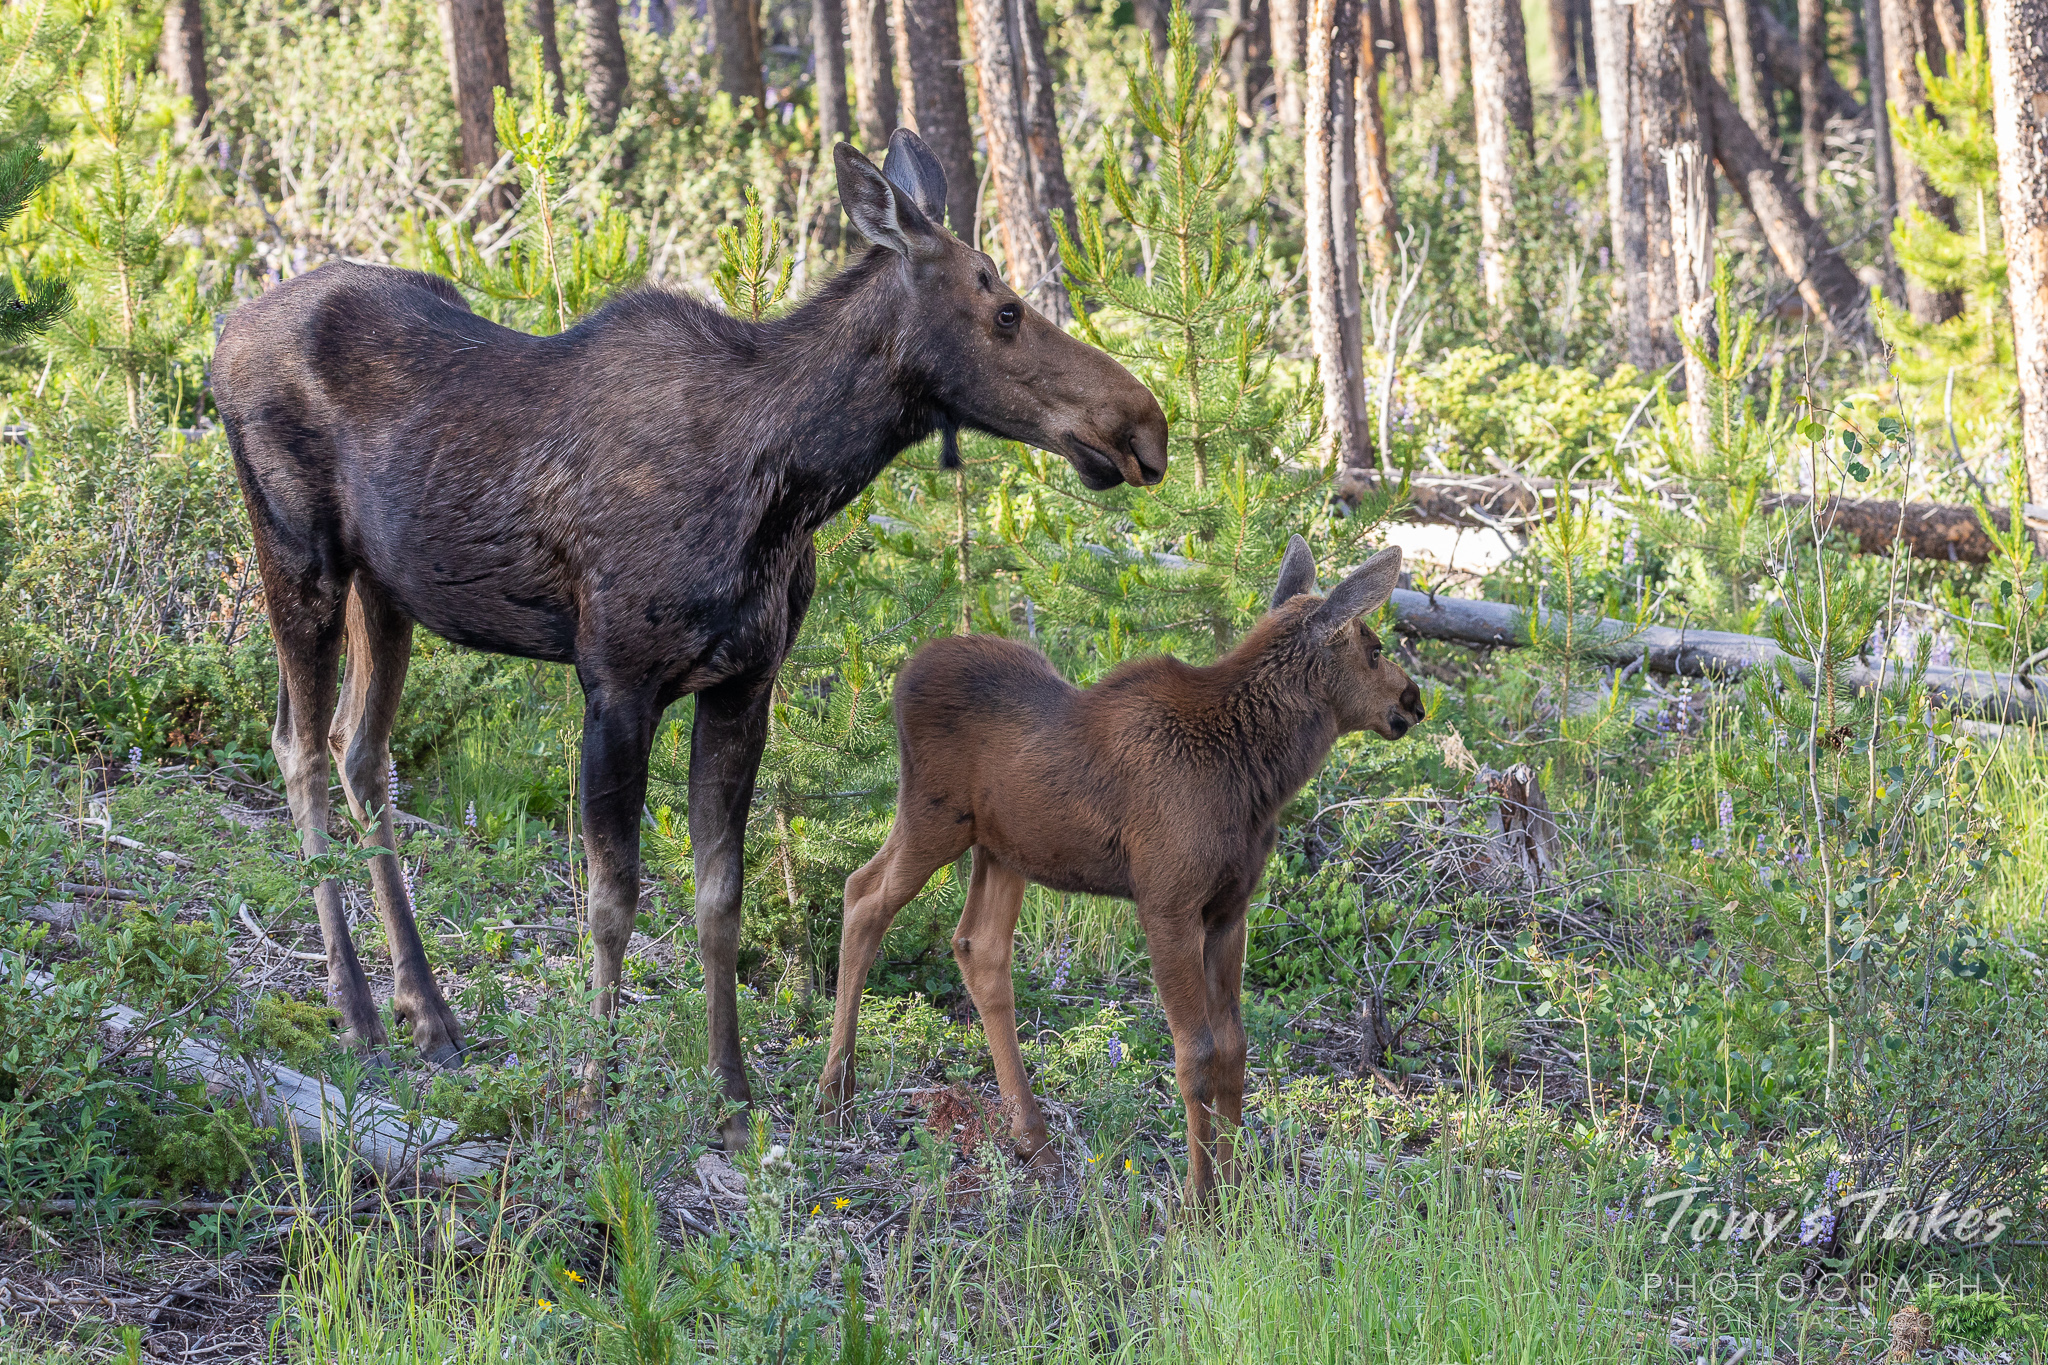 A moose cow and her calf keep watch on campers in the Colorado high country. (© Tony's Takes)